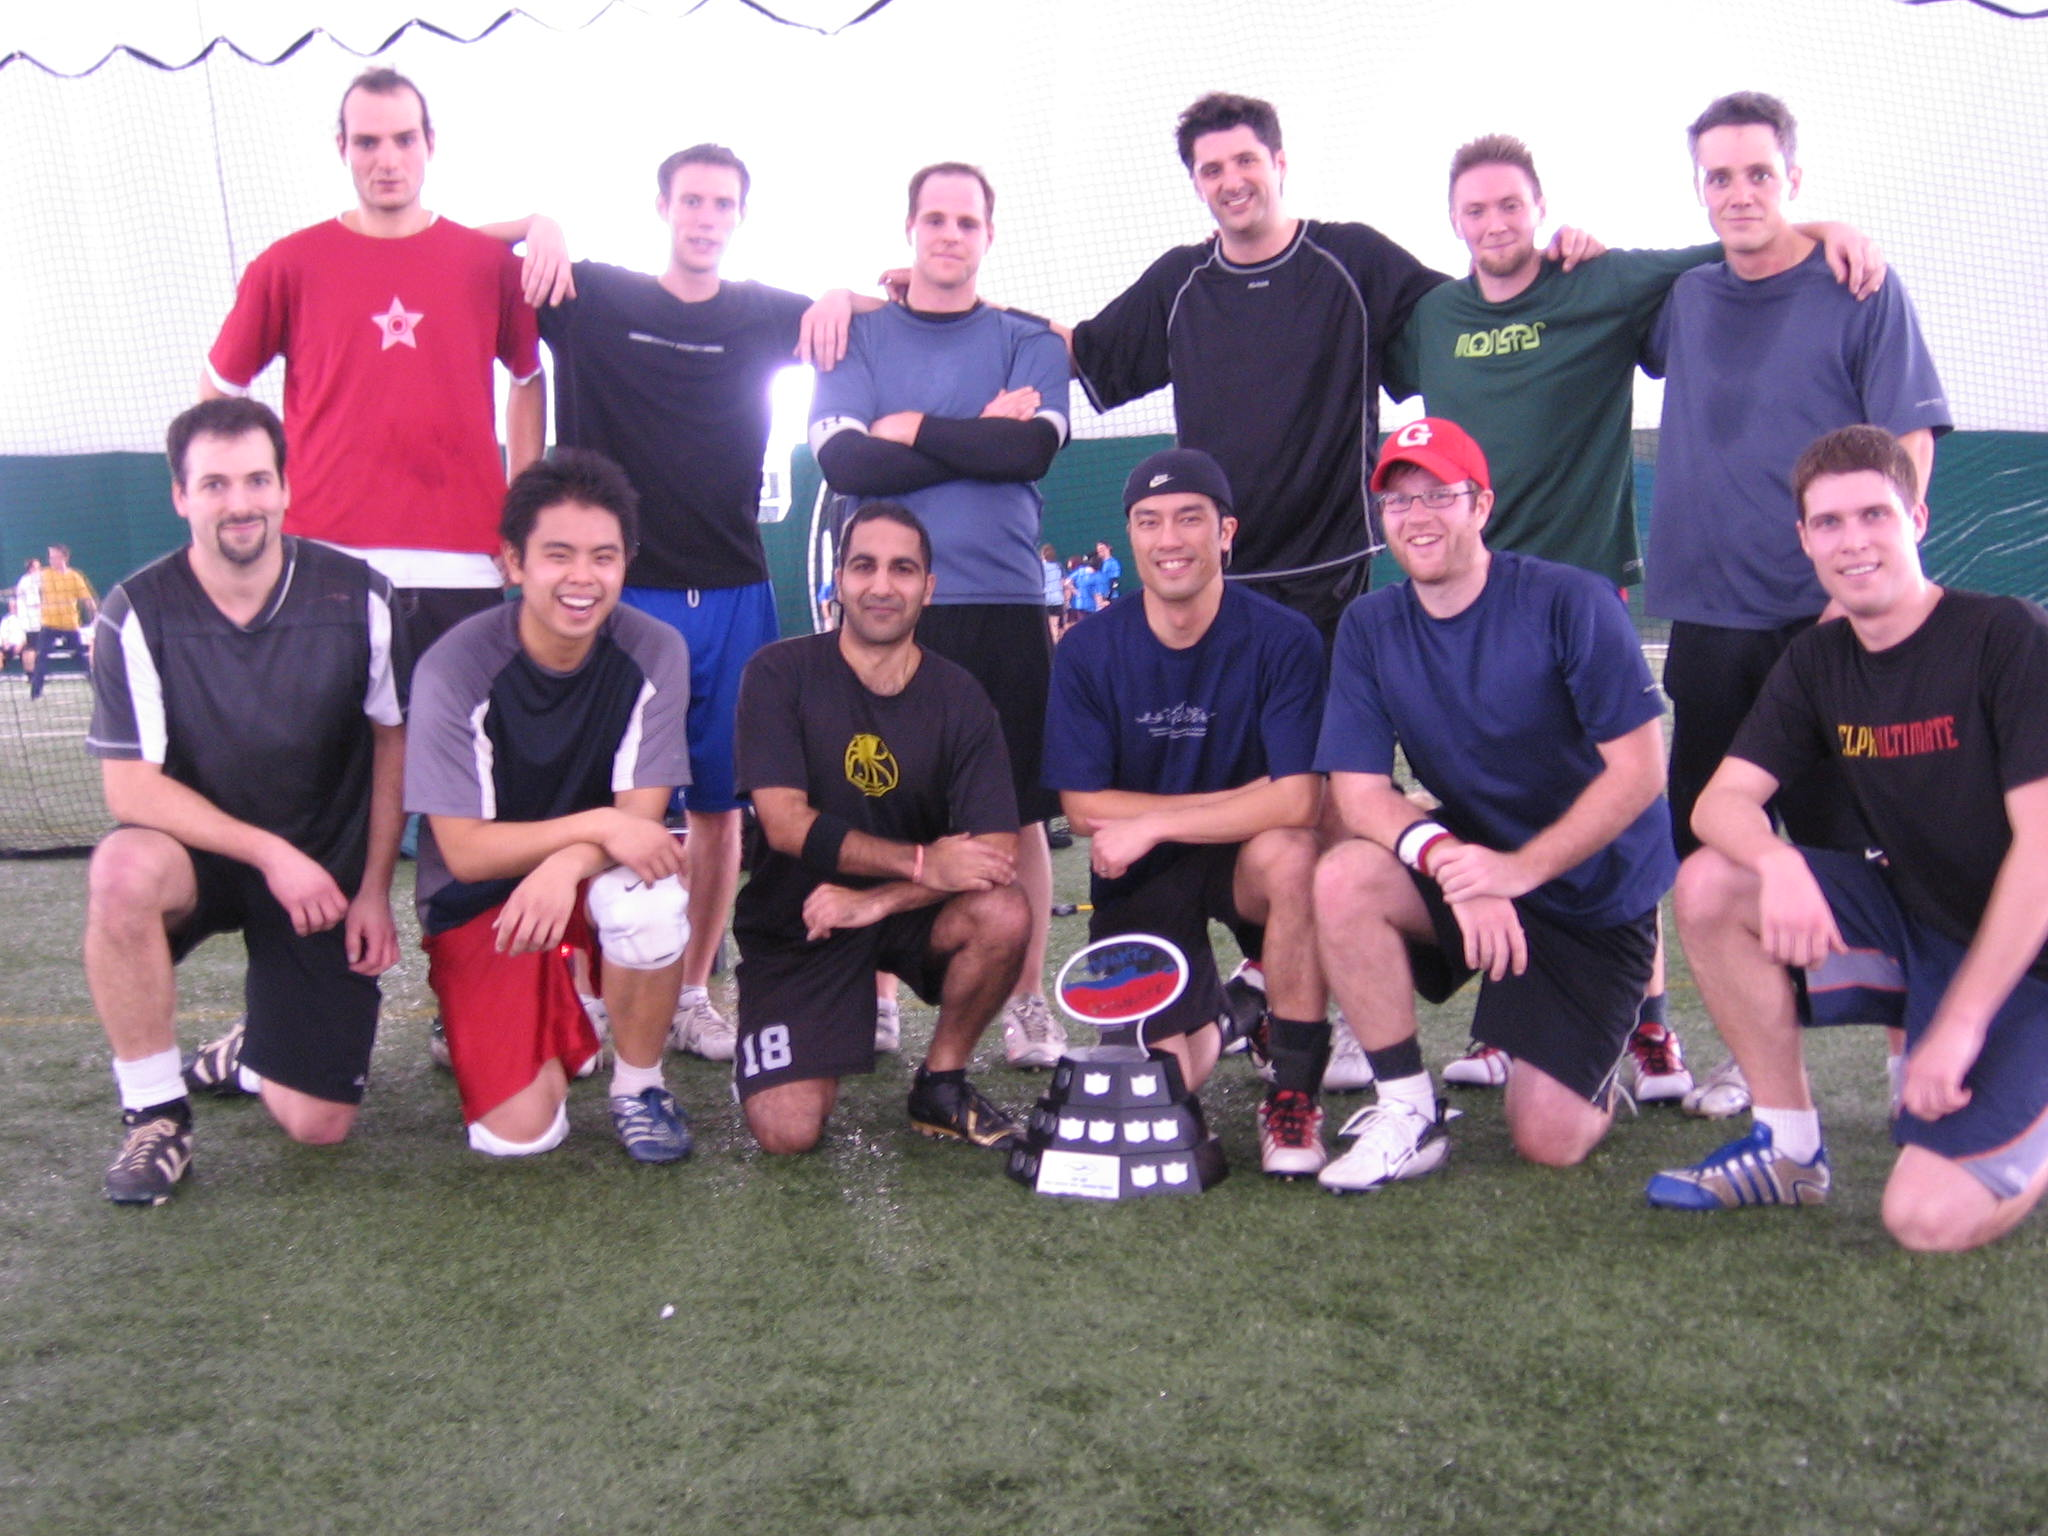 Men's League Champs